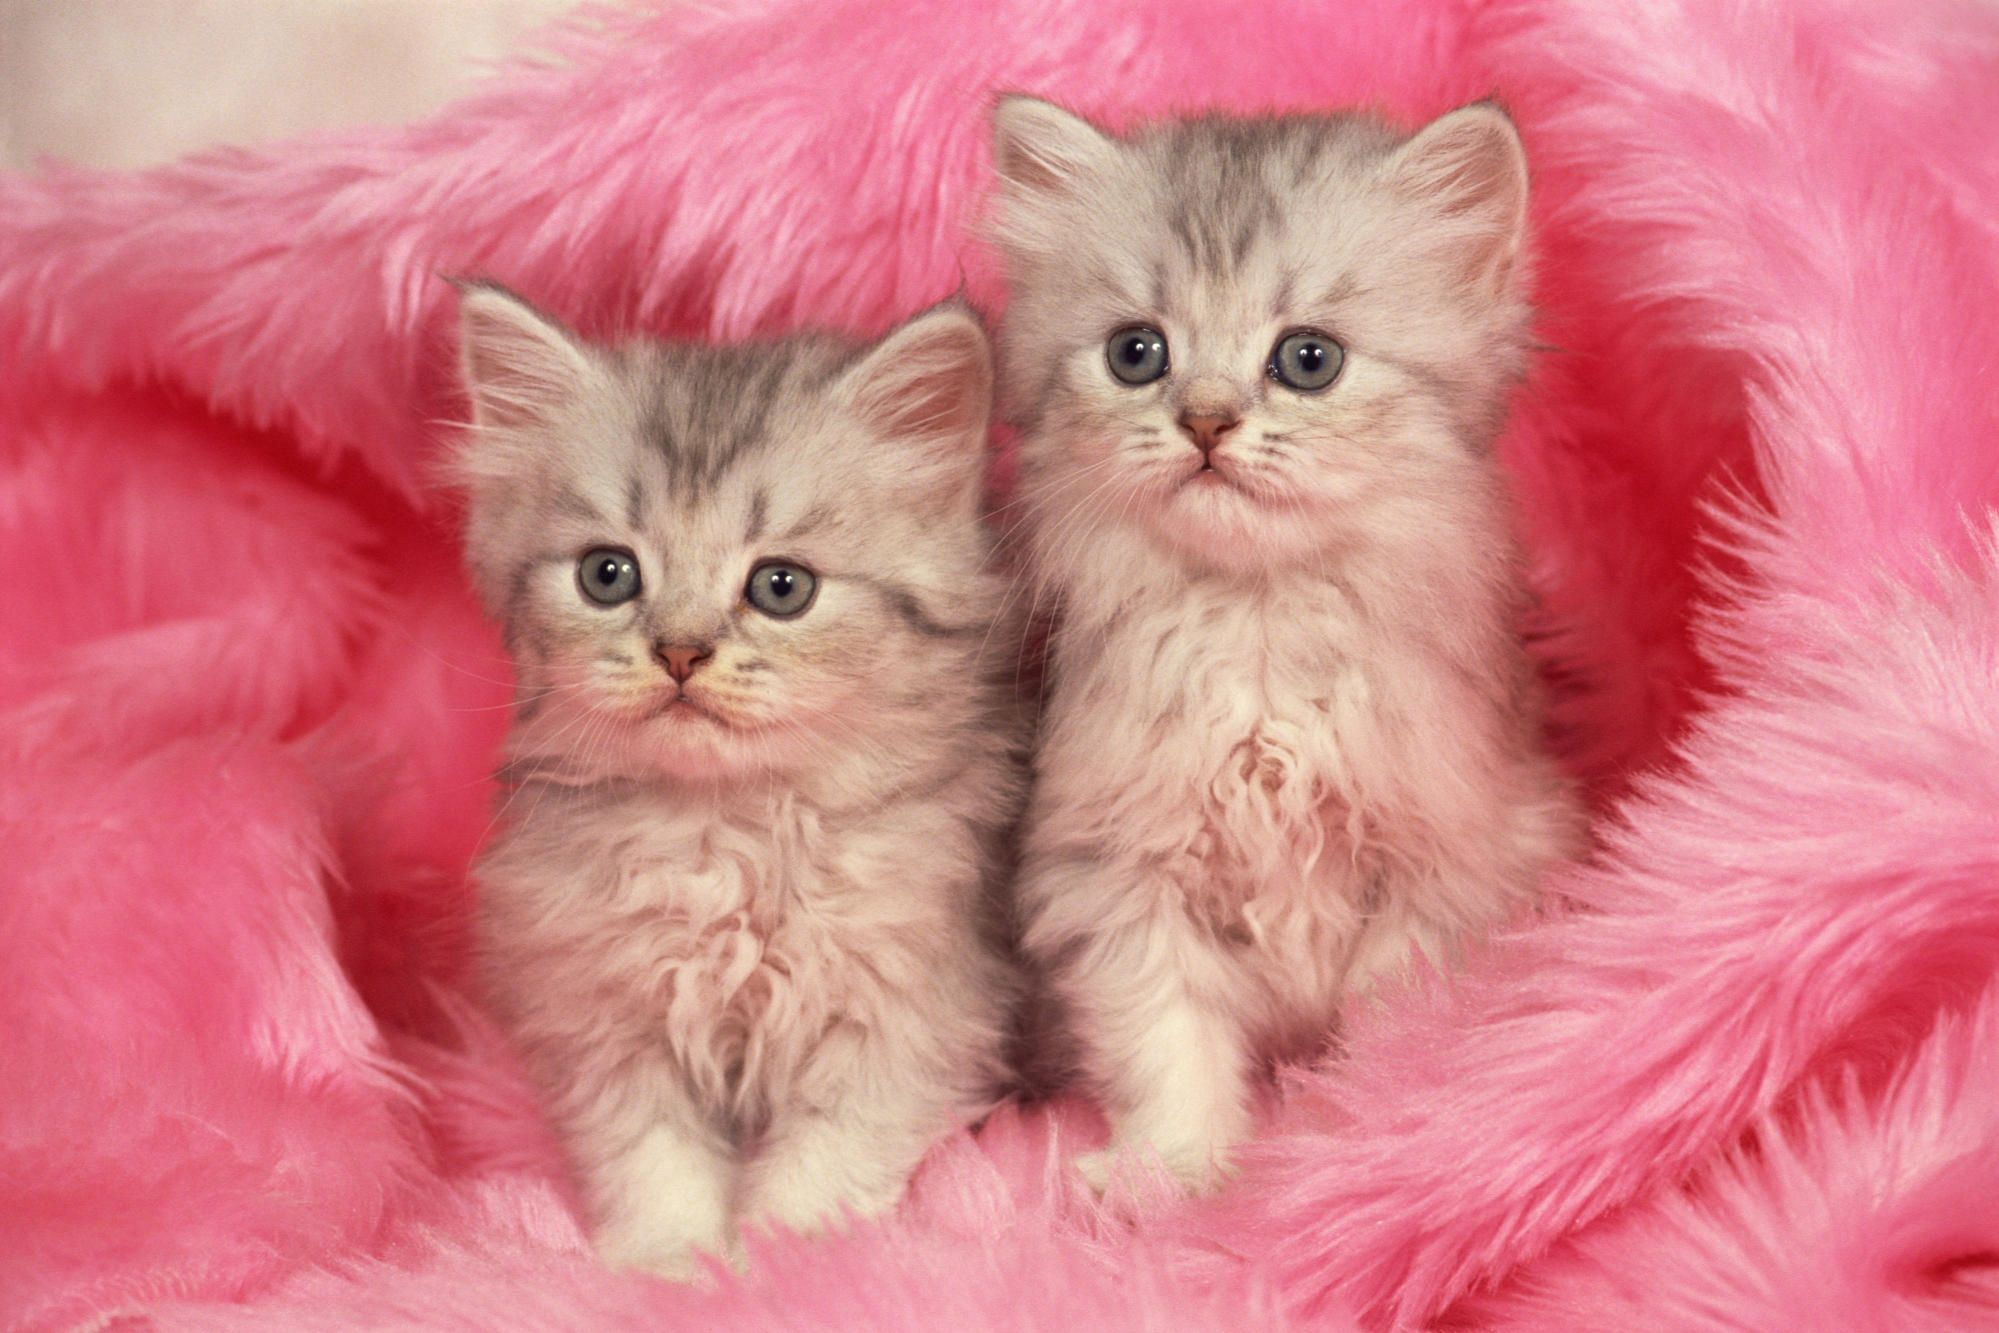 Cute Cats Hd Wallpapers Free Download 9to5animations Com Beautiful Kittens Cute Animals Beautiful Cats